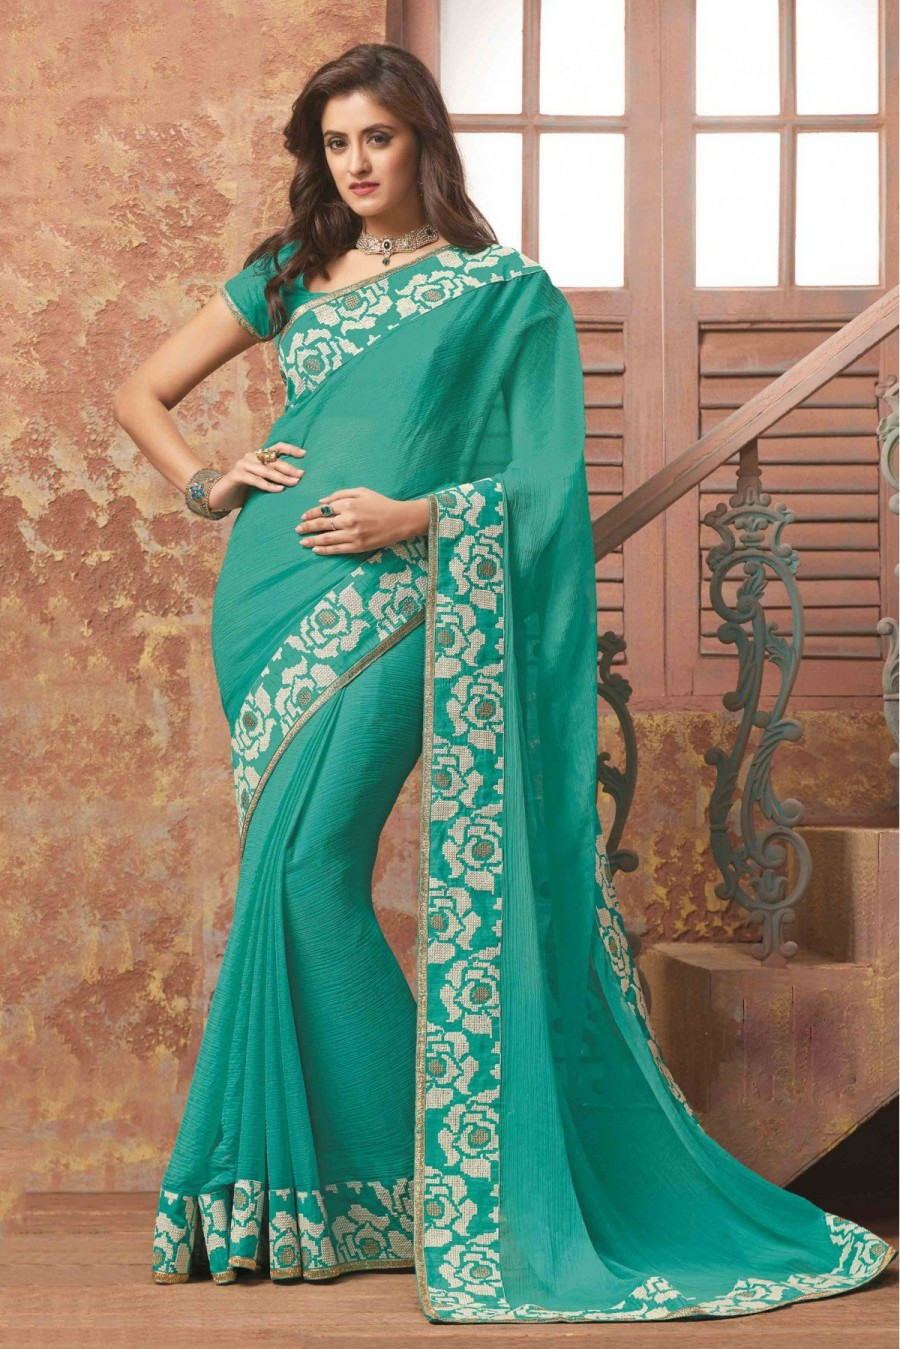 47785a10e0 Buy Laxmipati Wrinkle Chiffon Party Wear Designer Saree In Sea Green Colour  Online